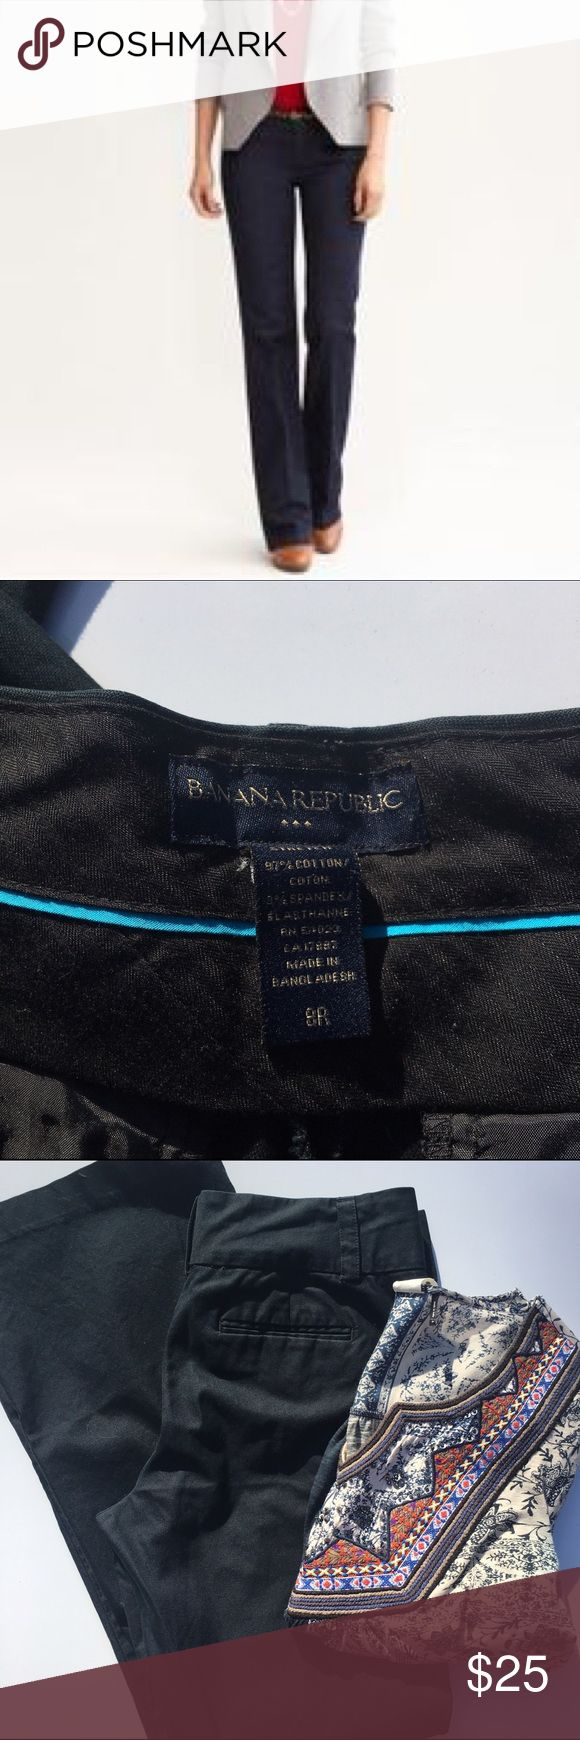 """Banana Republic Navy Stretch Chino Trousers Banana Republic Navy Stretch Trousers in size 8R. Pre-loved, but have a lot of use left in them. 97% cotton, 3% spandex for a comfortable fit. Approximate inseams: 31"""" inches. Banana Republic Pants Trousers"""